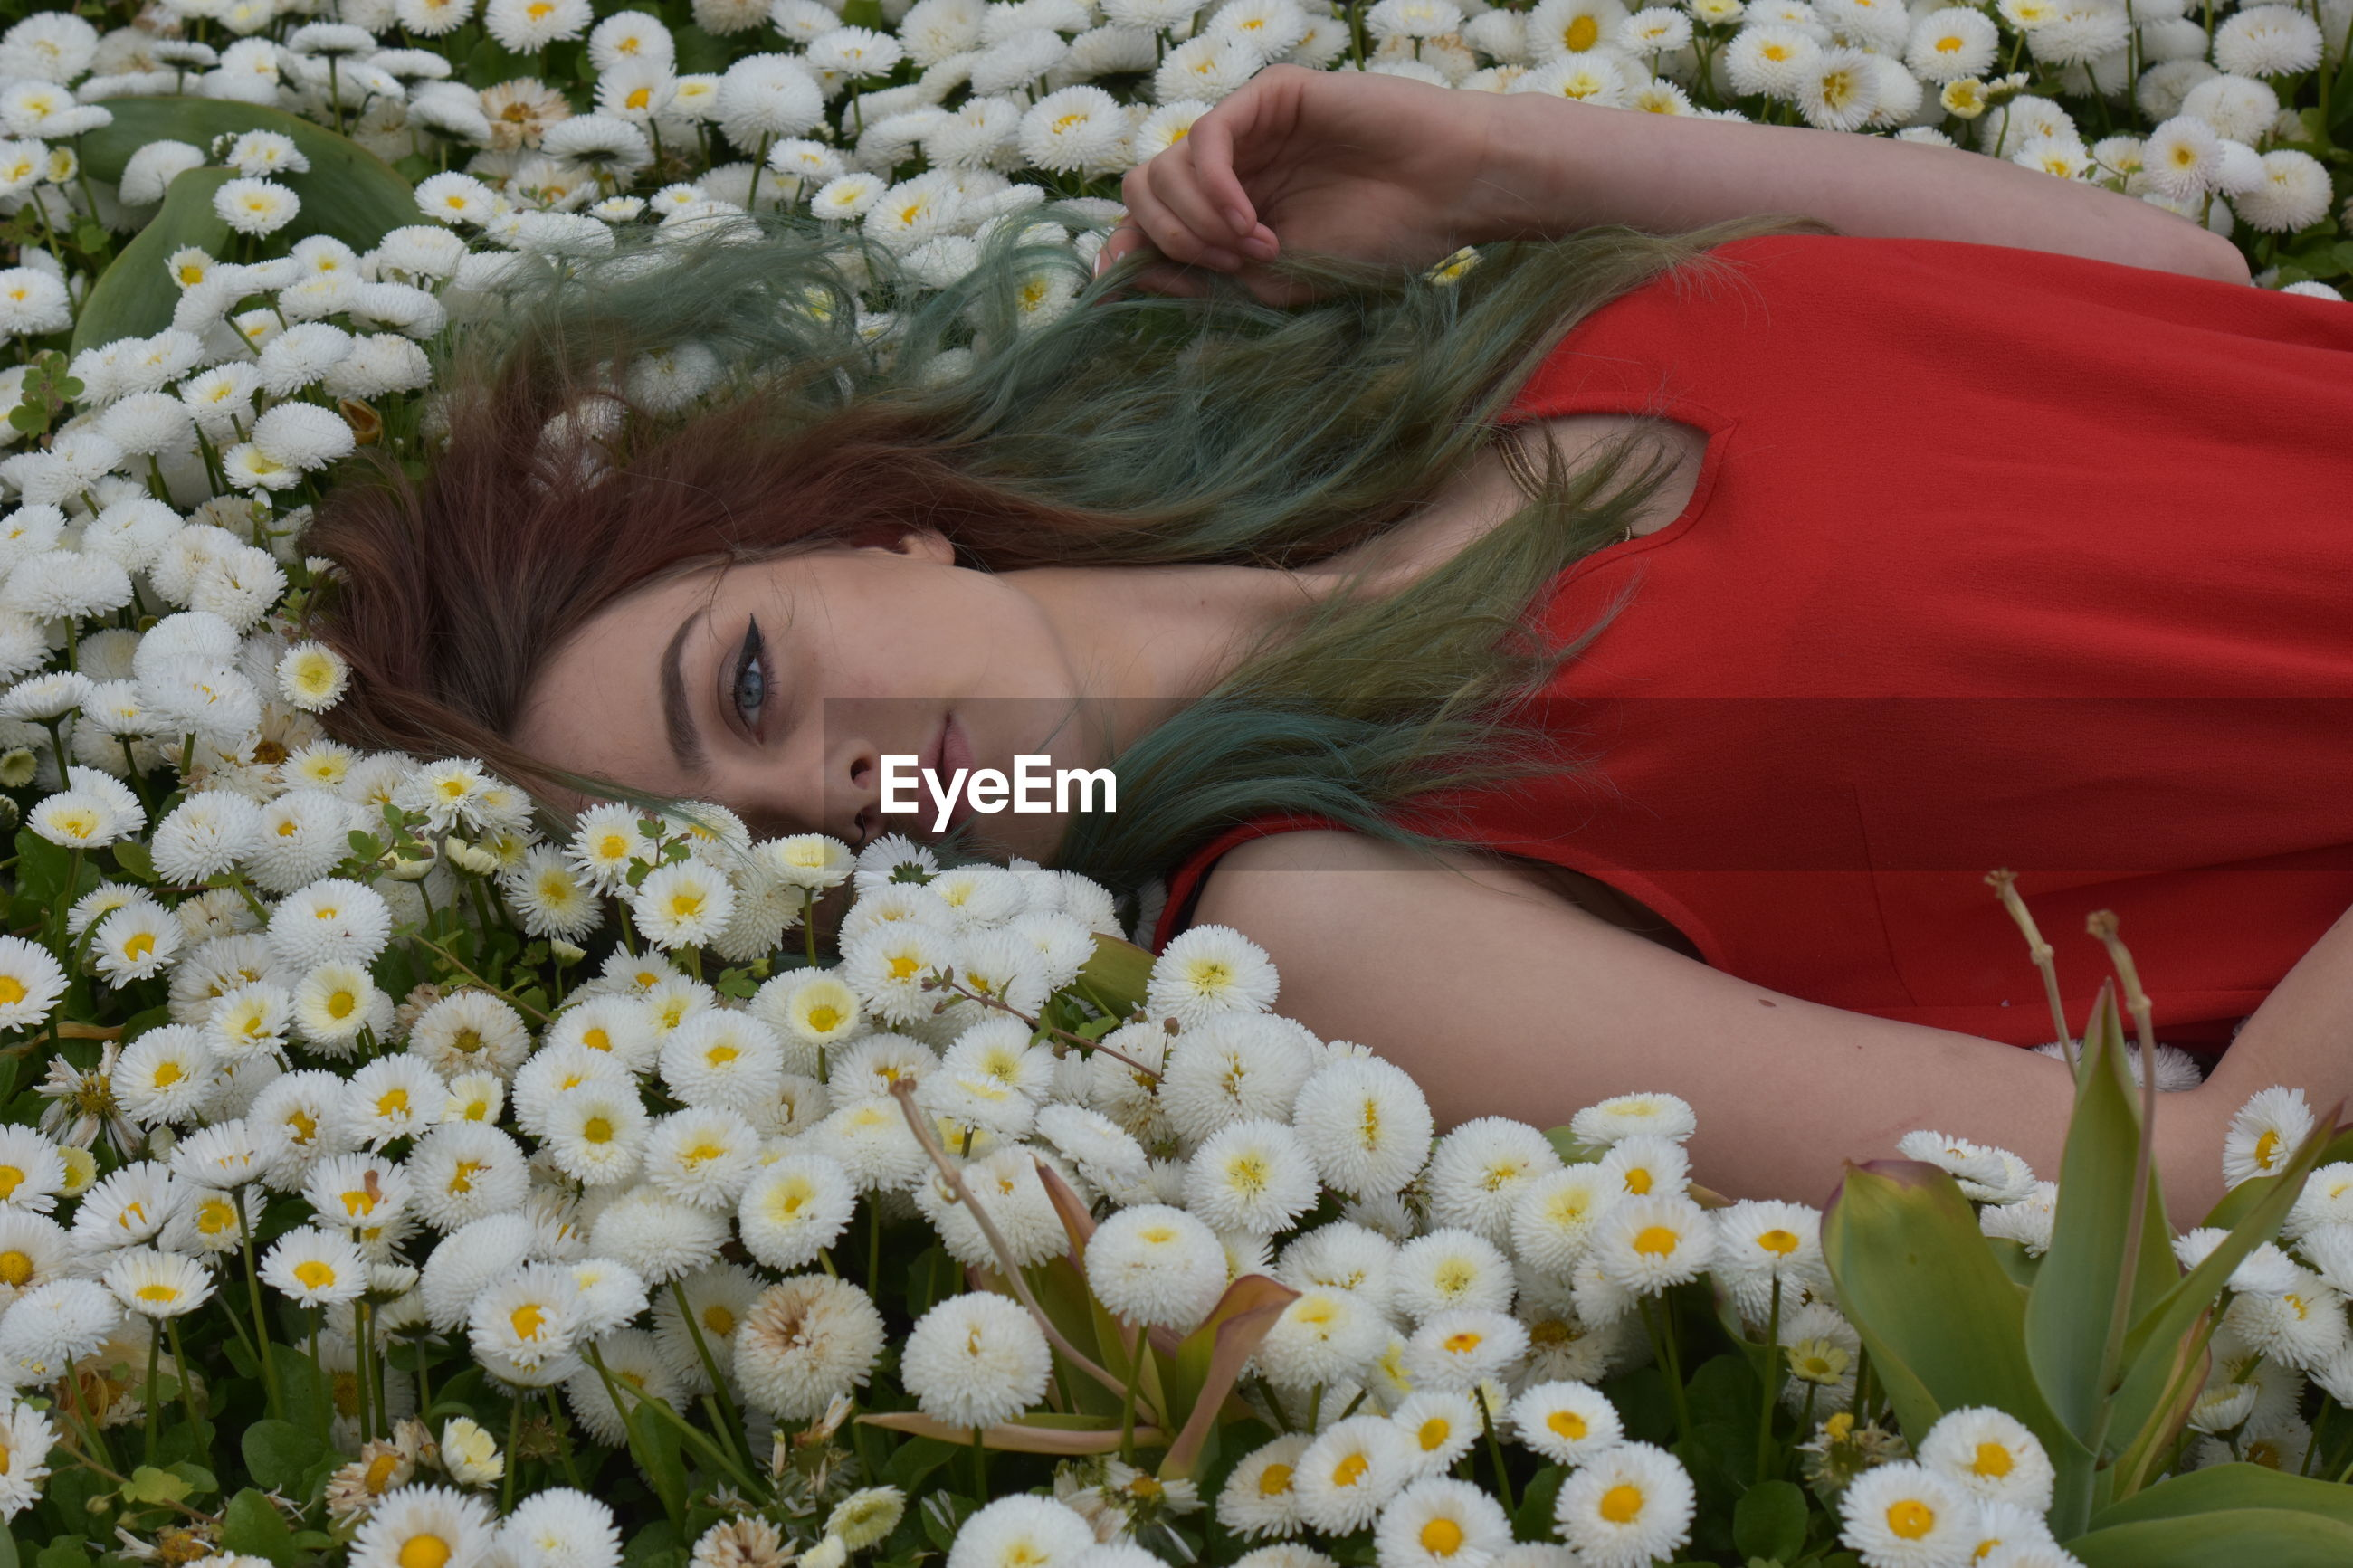 Portrait of young woman lying on flowers